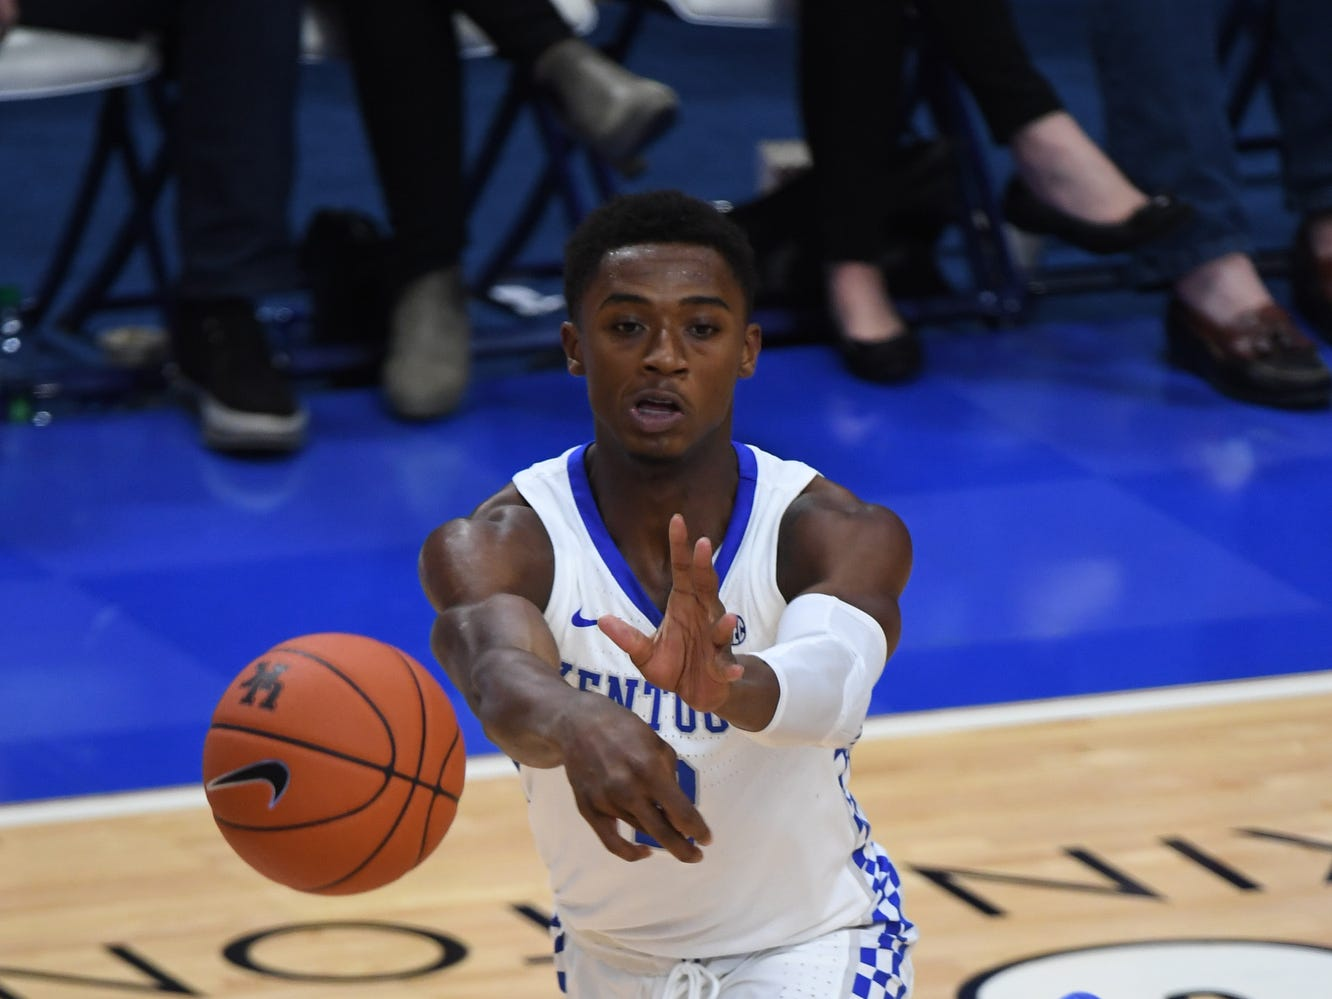 UK G Ashton Hagans passes the ball during the University of Kentucky mens basketball game against VMI at Rupp Arena in Lexington, Kentucky on Sunday, November 18, 2018.